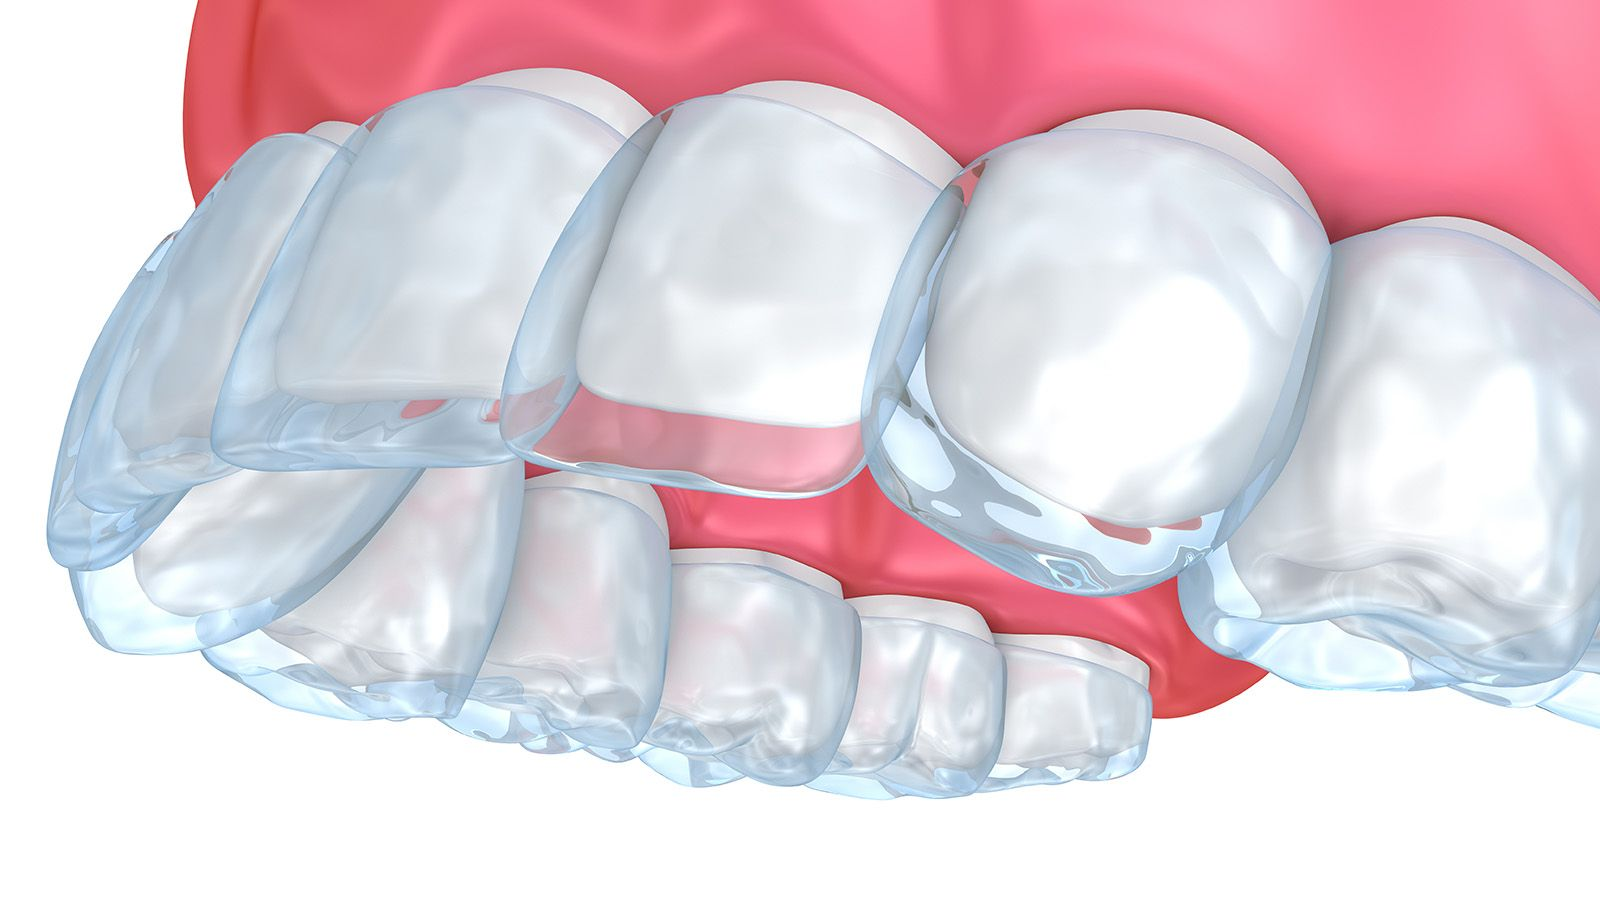 Invisalign orthodontic aligners in place